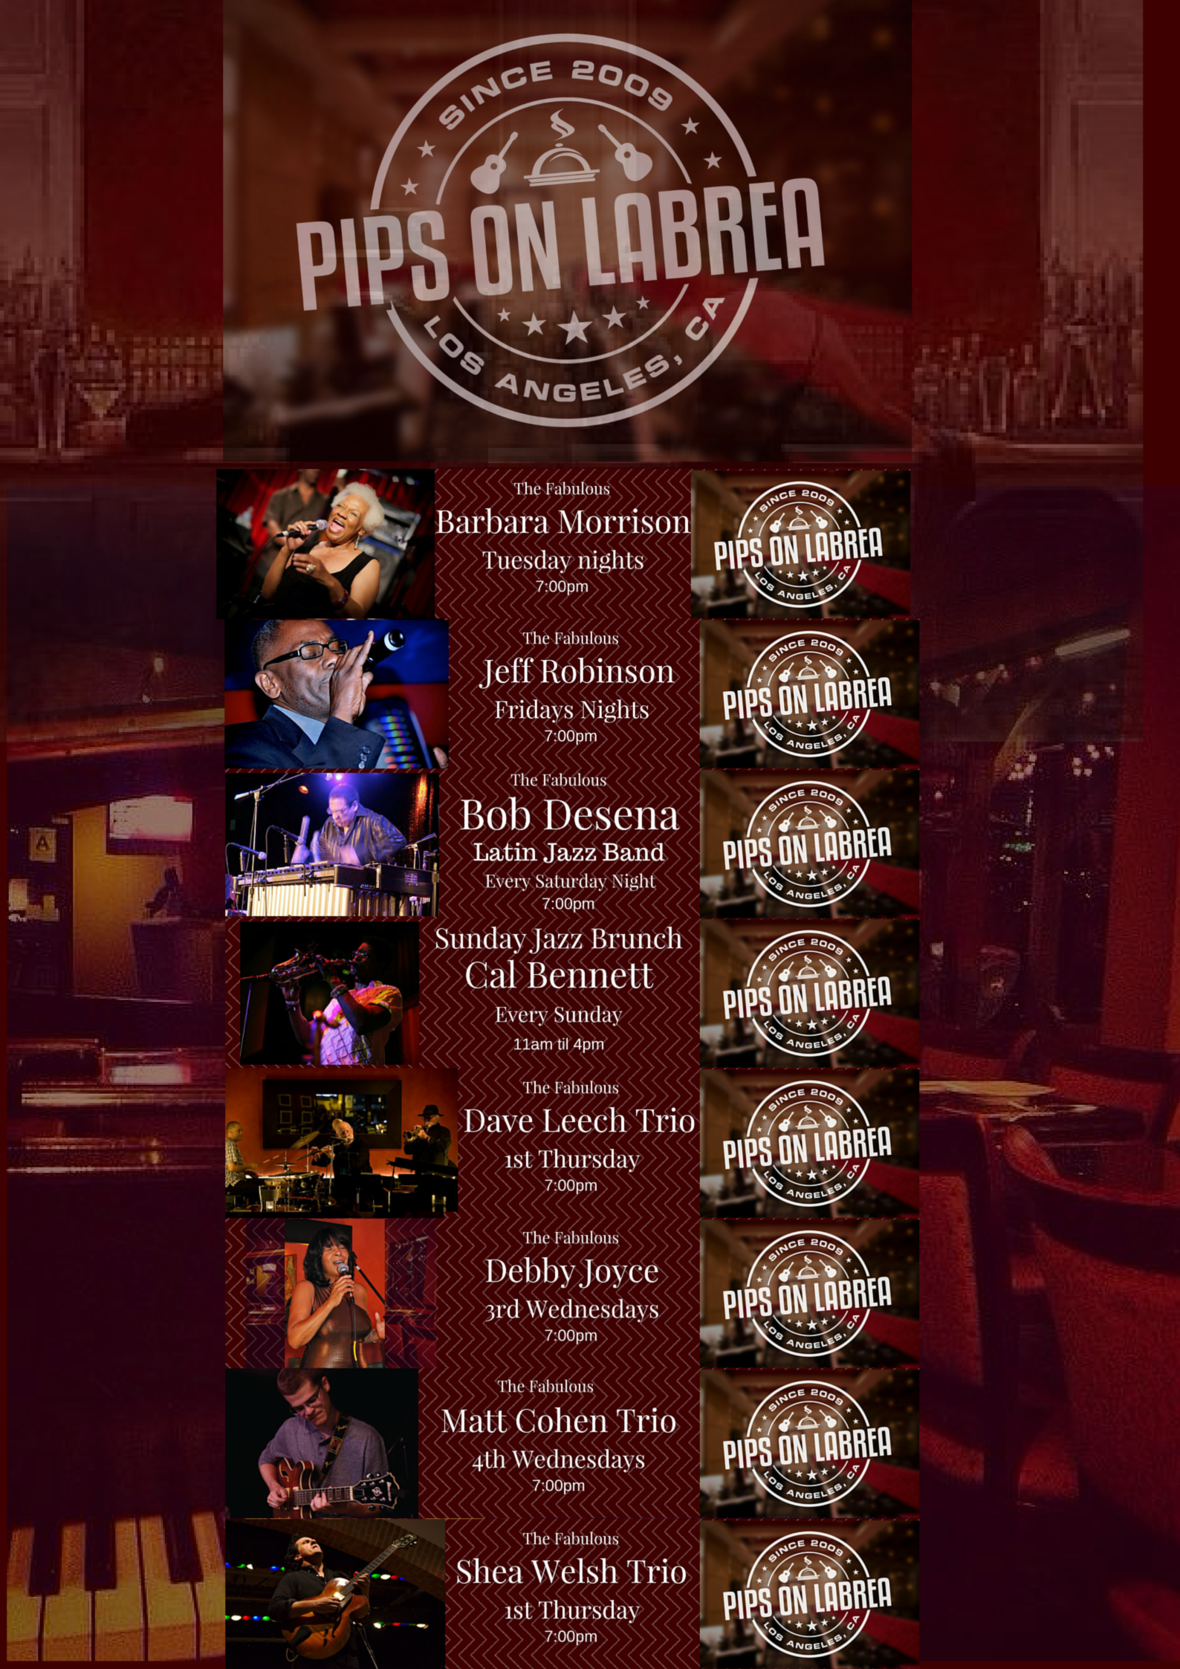 pipsonlabrea livemusic livejazz jazz bluse barbaramorrison brunch 1